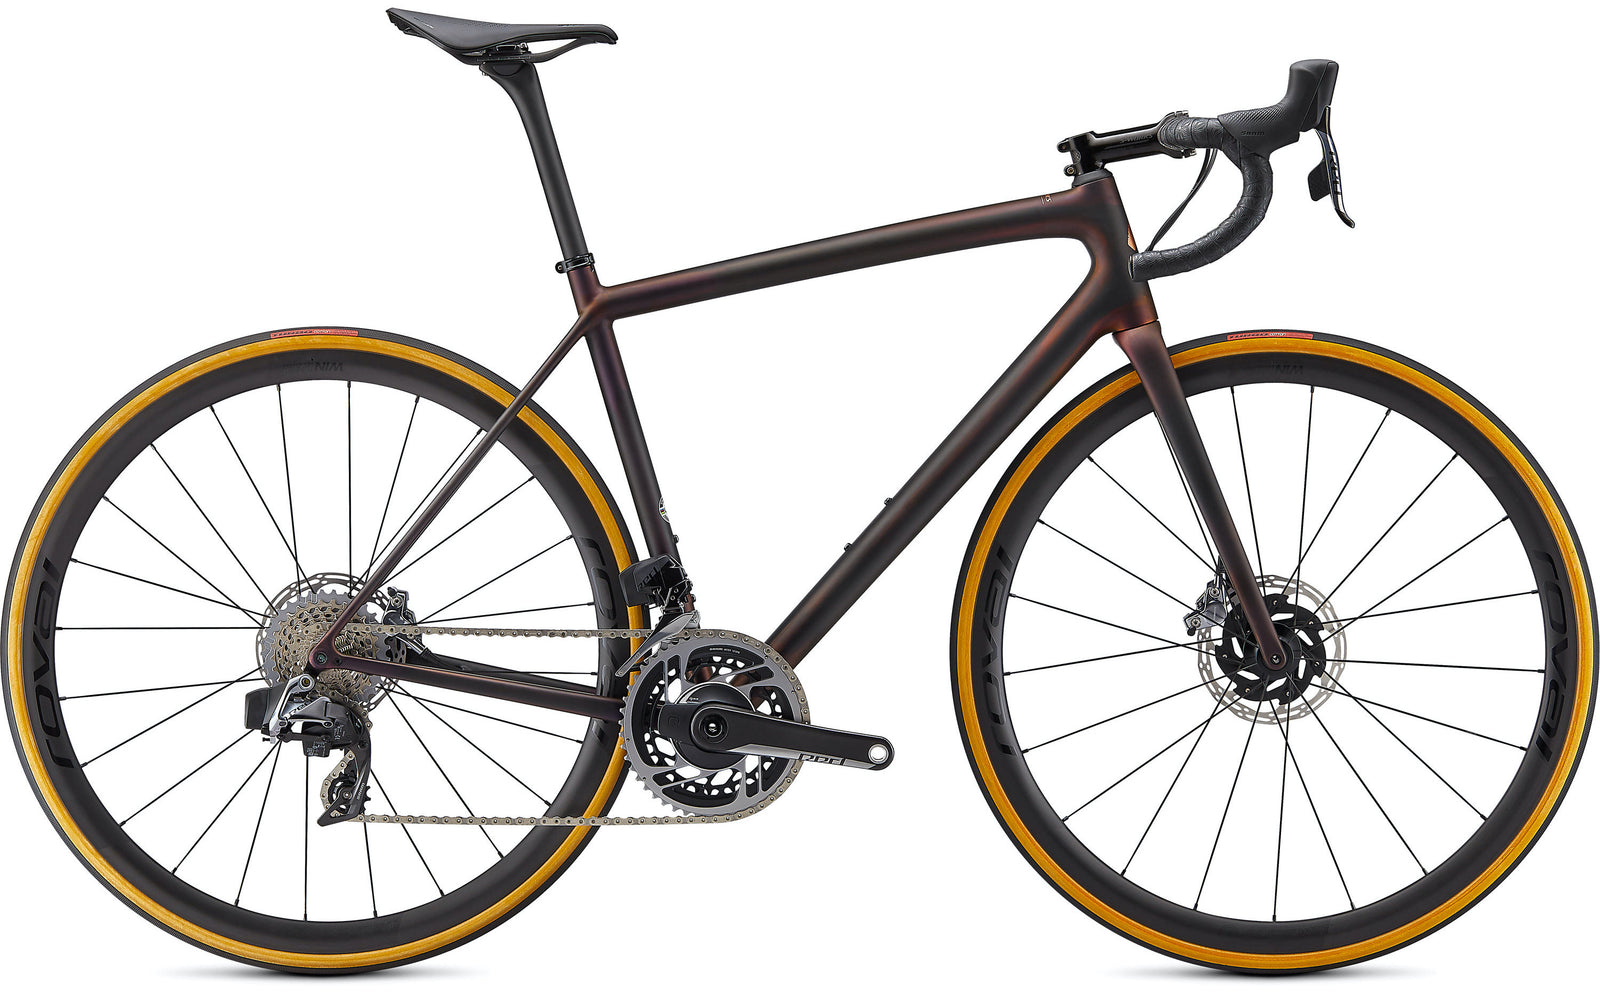 S-Works Aethos Sram Red eTap AXS